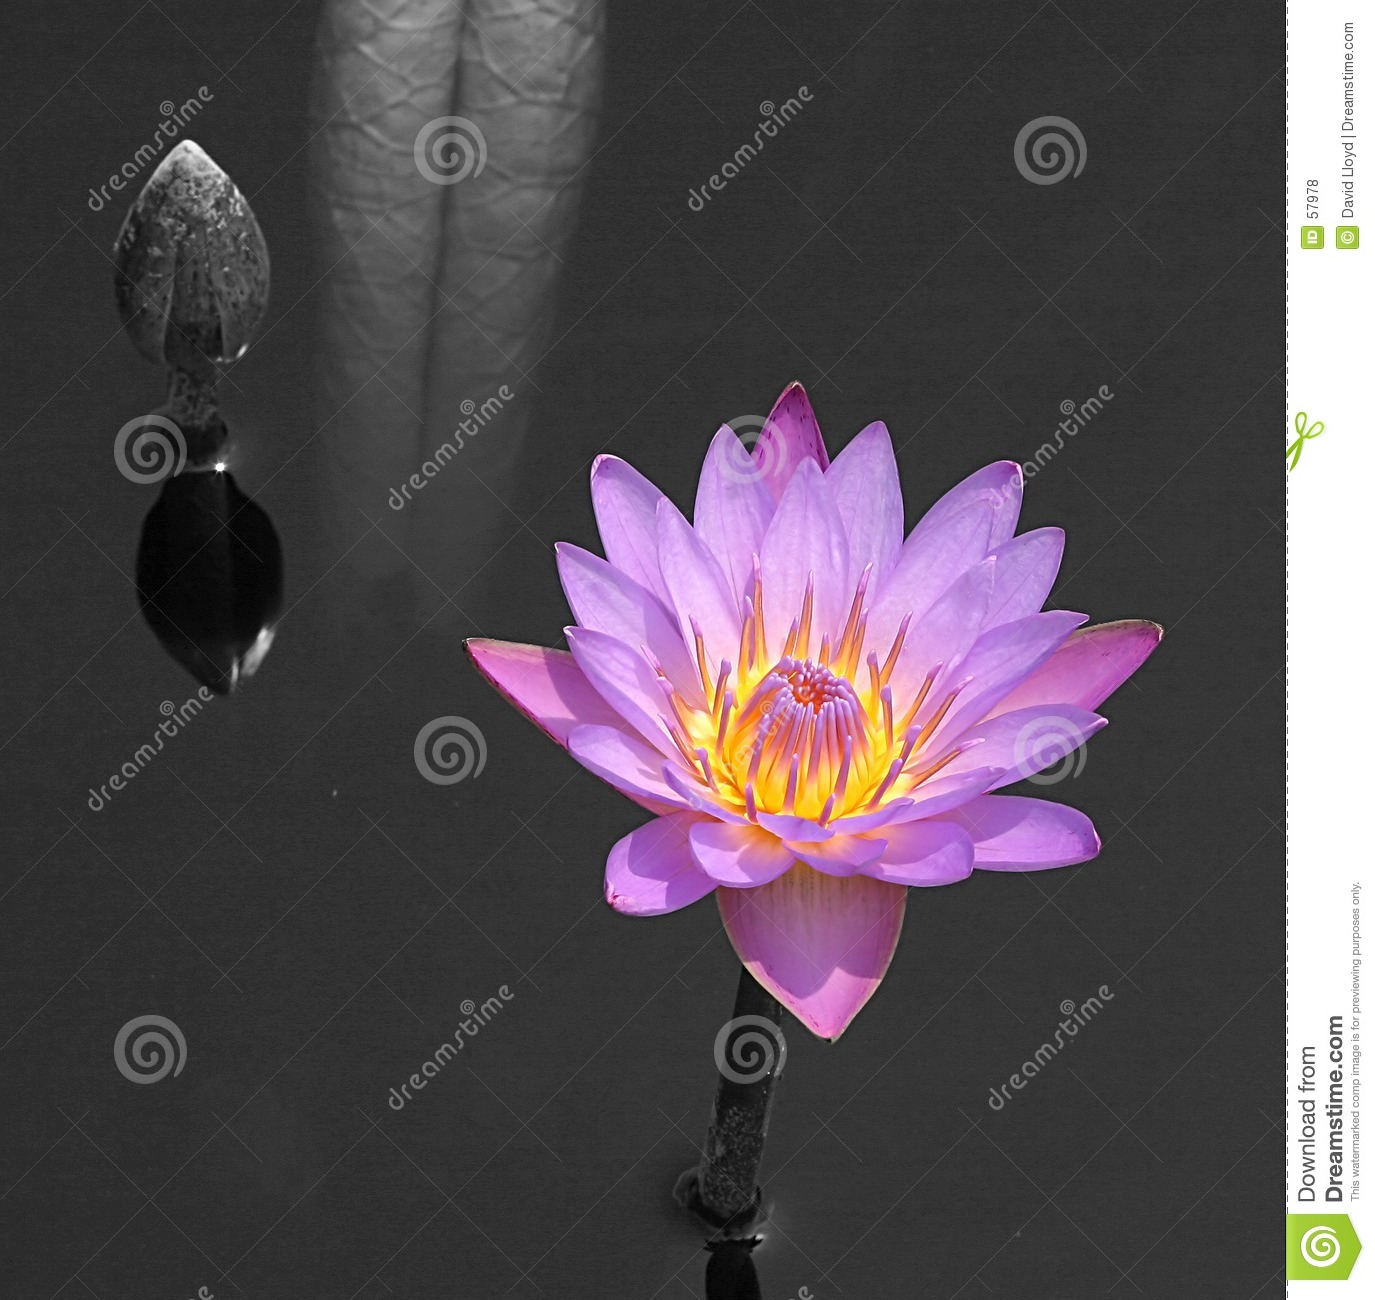 Water lilly, achtergrond B&W